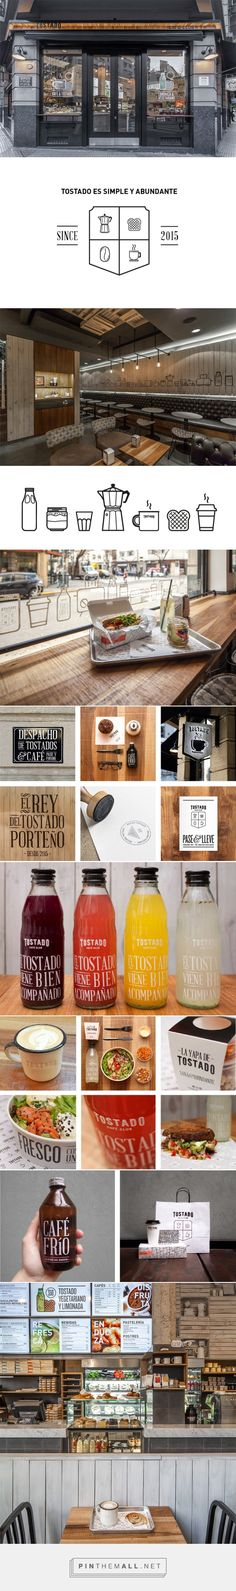 Tostado Cafe Club | Identity Designed... - a grouped images picture - Pin Them All